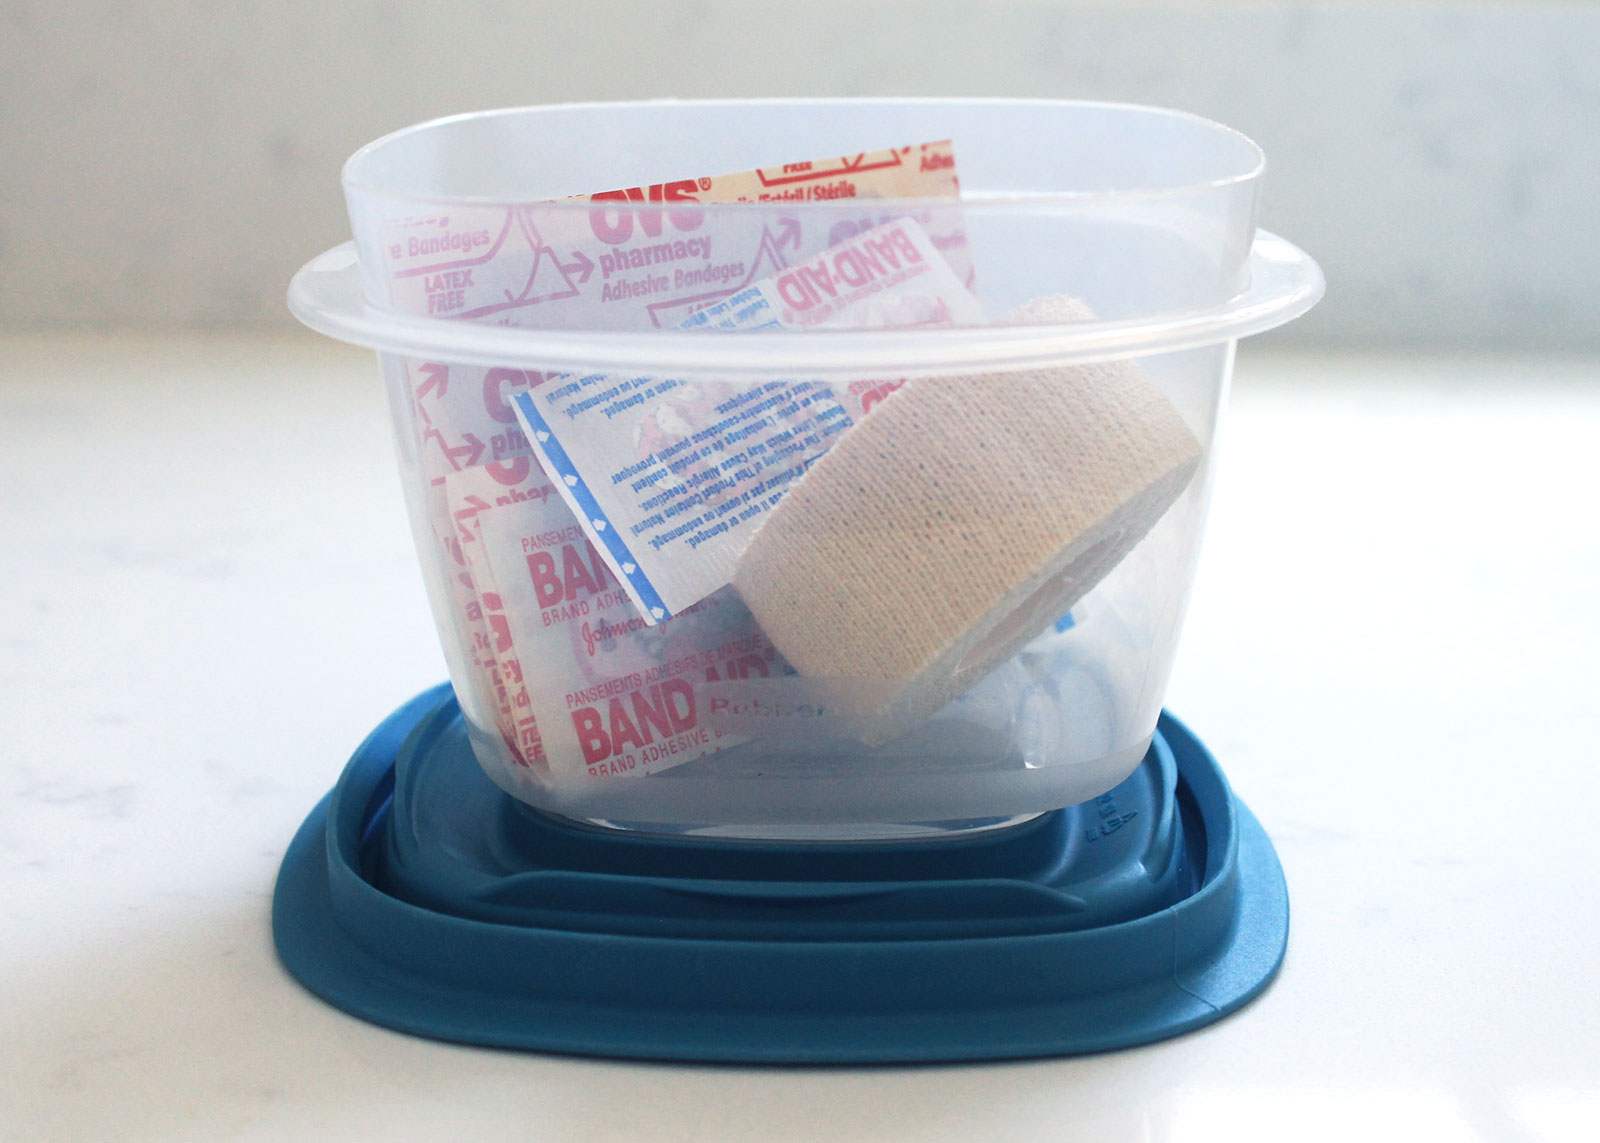 Repurpose plastic containers to store first aid kits